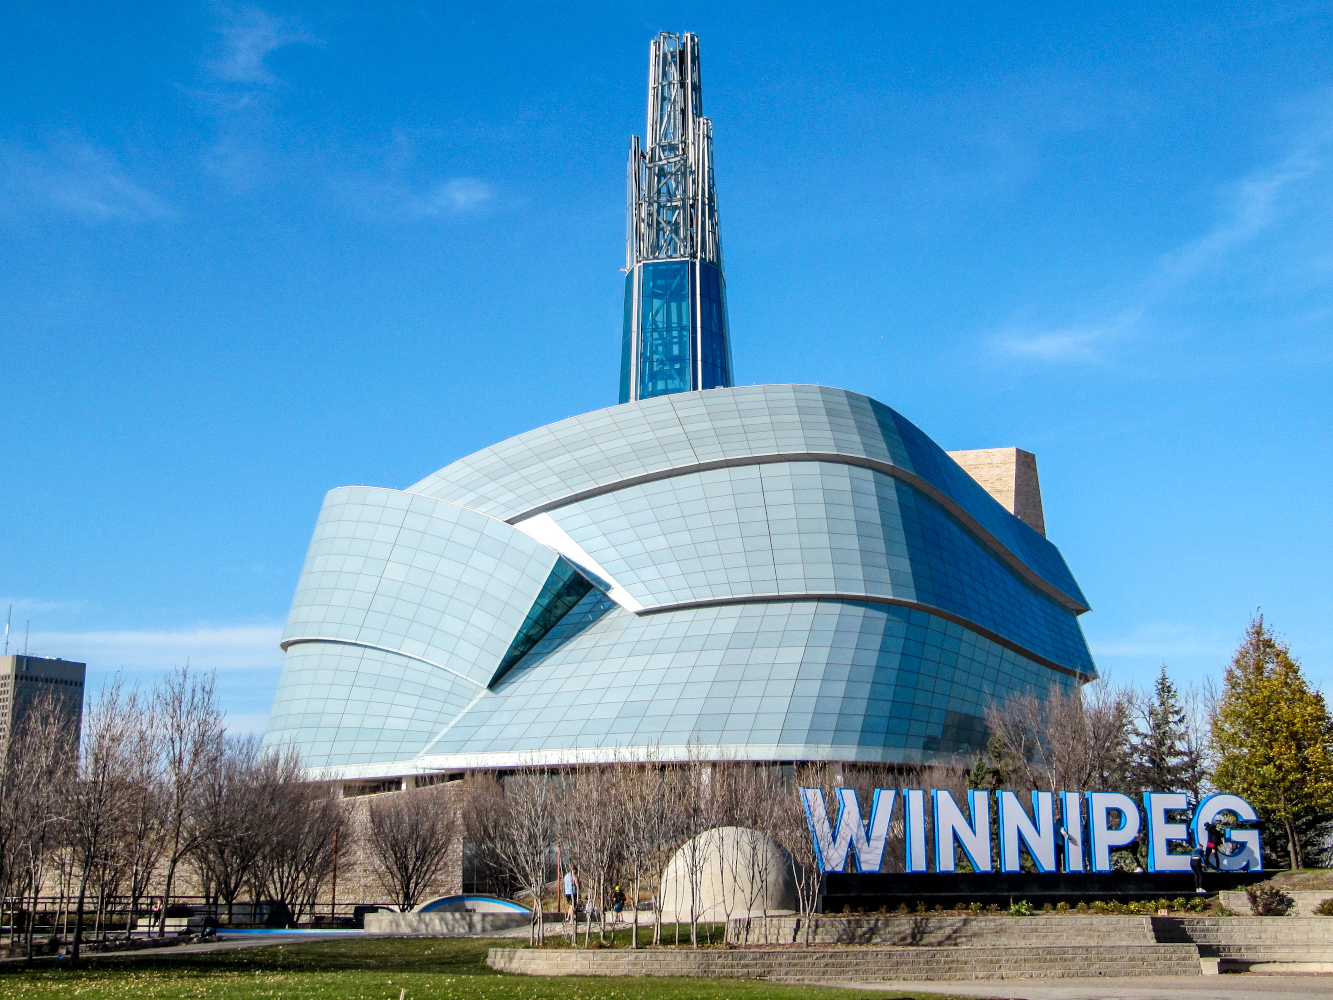 5 Days in Winnipeg Itinerary (By a Local): The Best Things to Do in Winnipeg